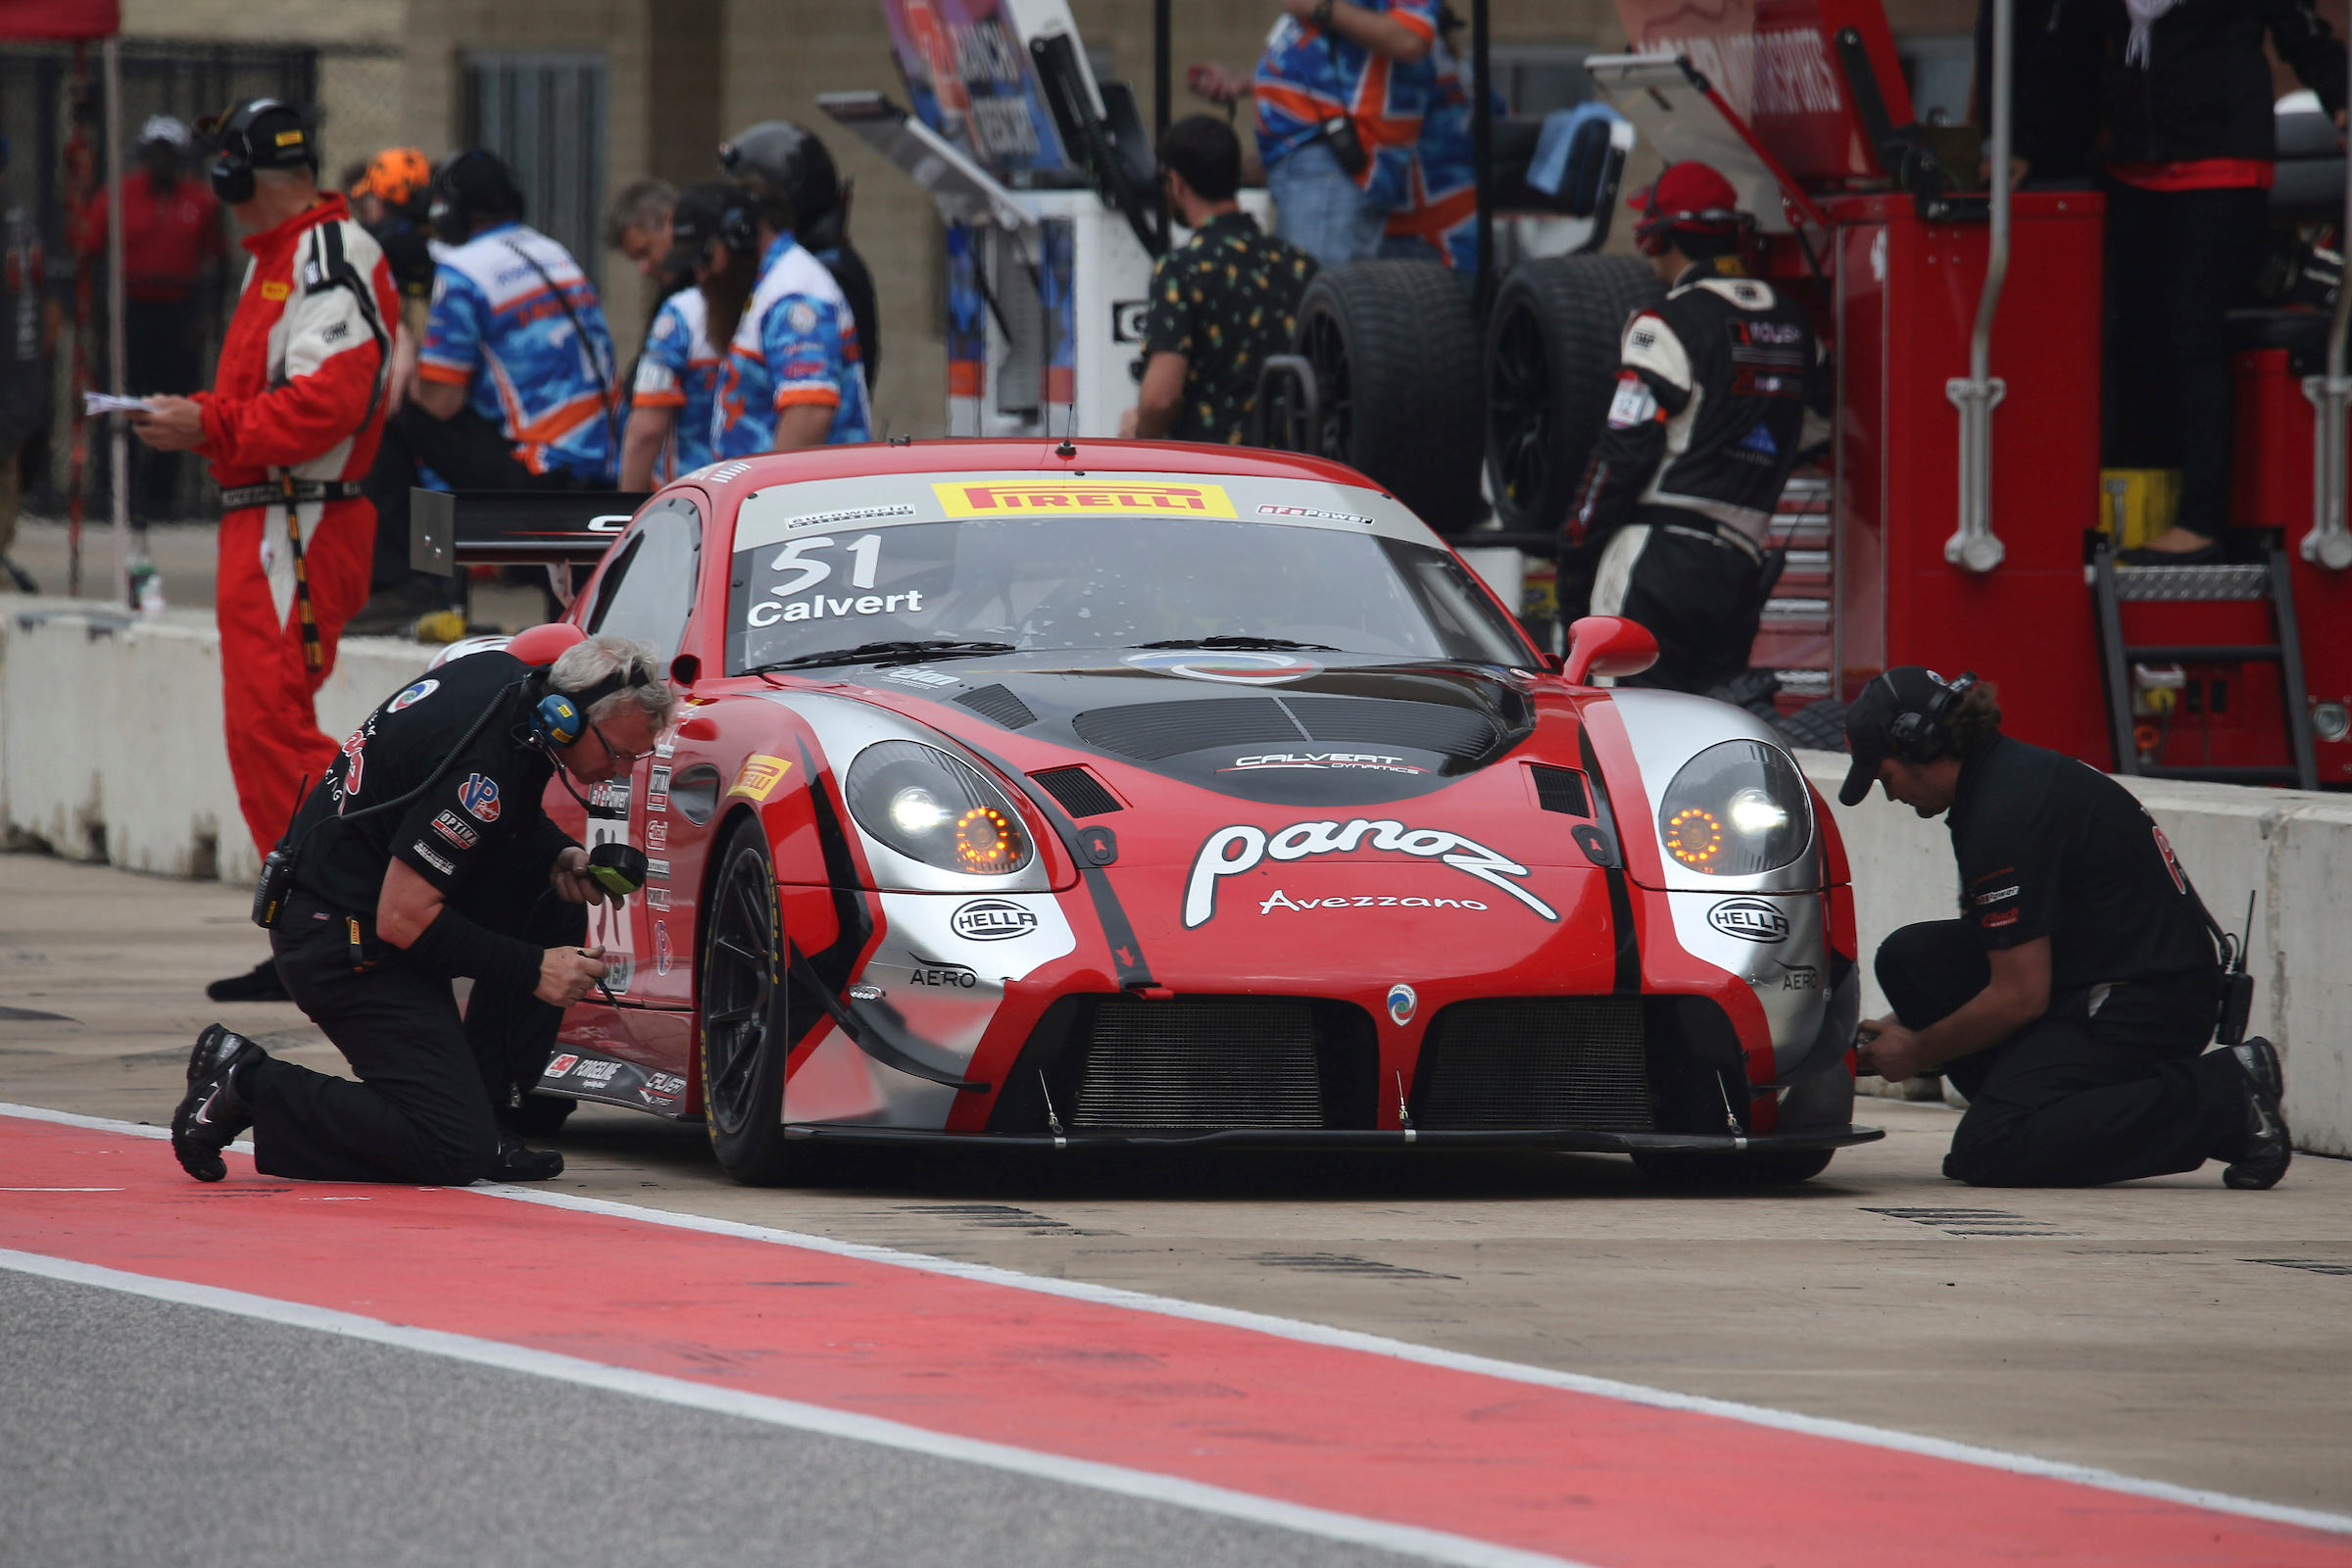 Team Panoz Racing Aims to Build on the Positives of the Grand Prix of Texas